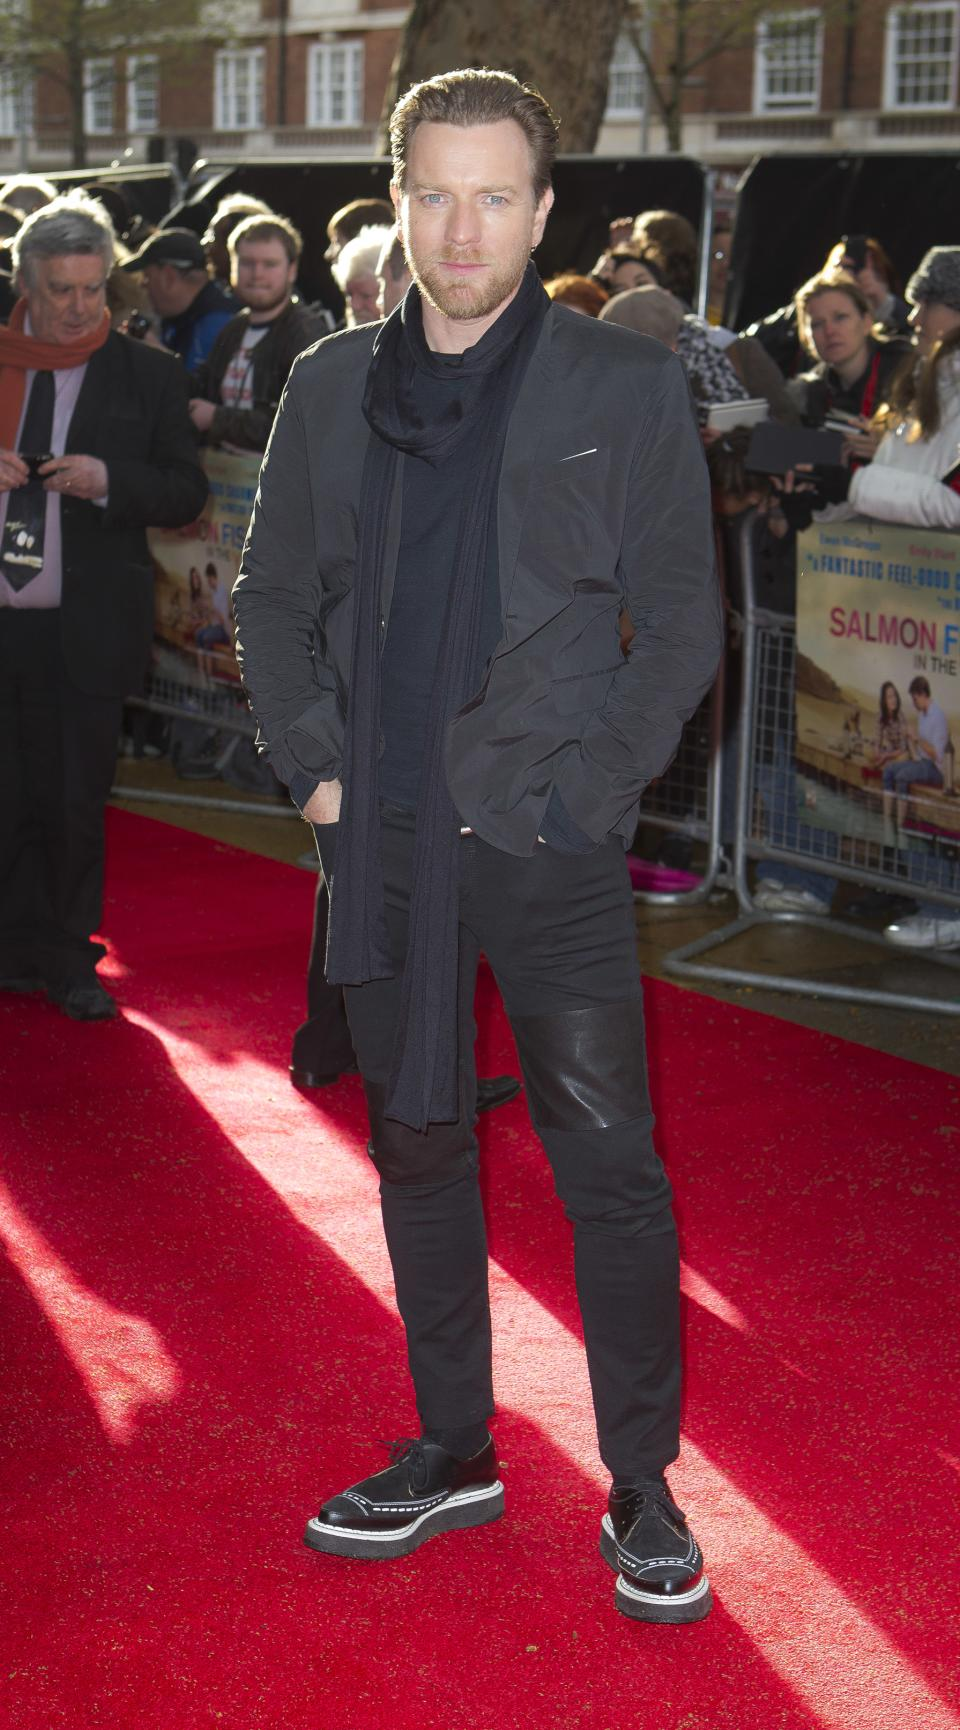 Actor Ewan McGregor arrives at the 'Salmon Fishing In The Yemen' European premiere at a west London cinema, Tuesday, April 10, 2012. (AP Photo/Joel Ryan)